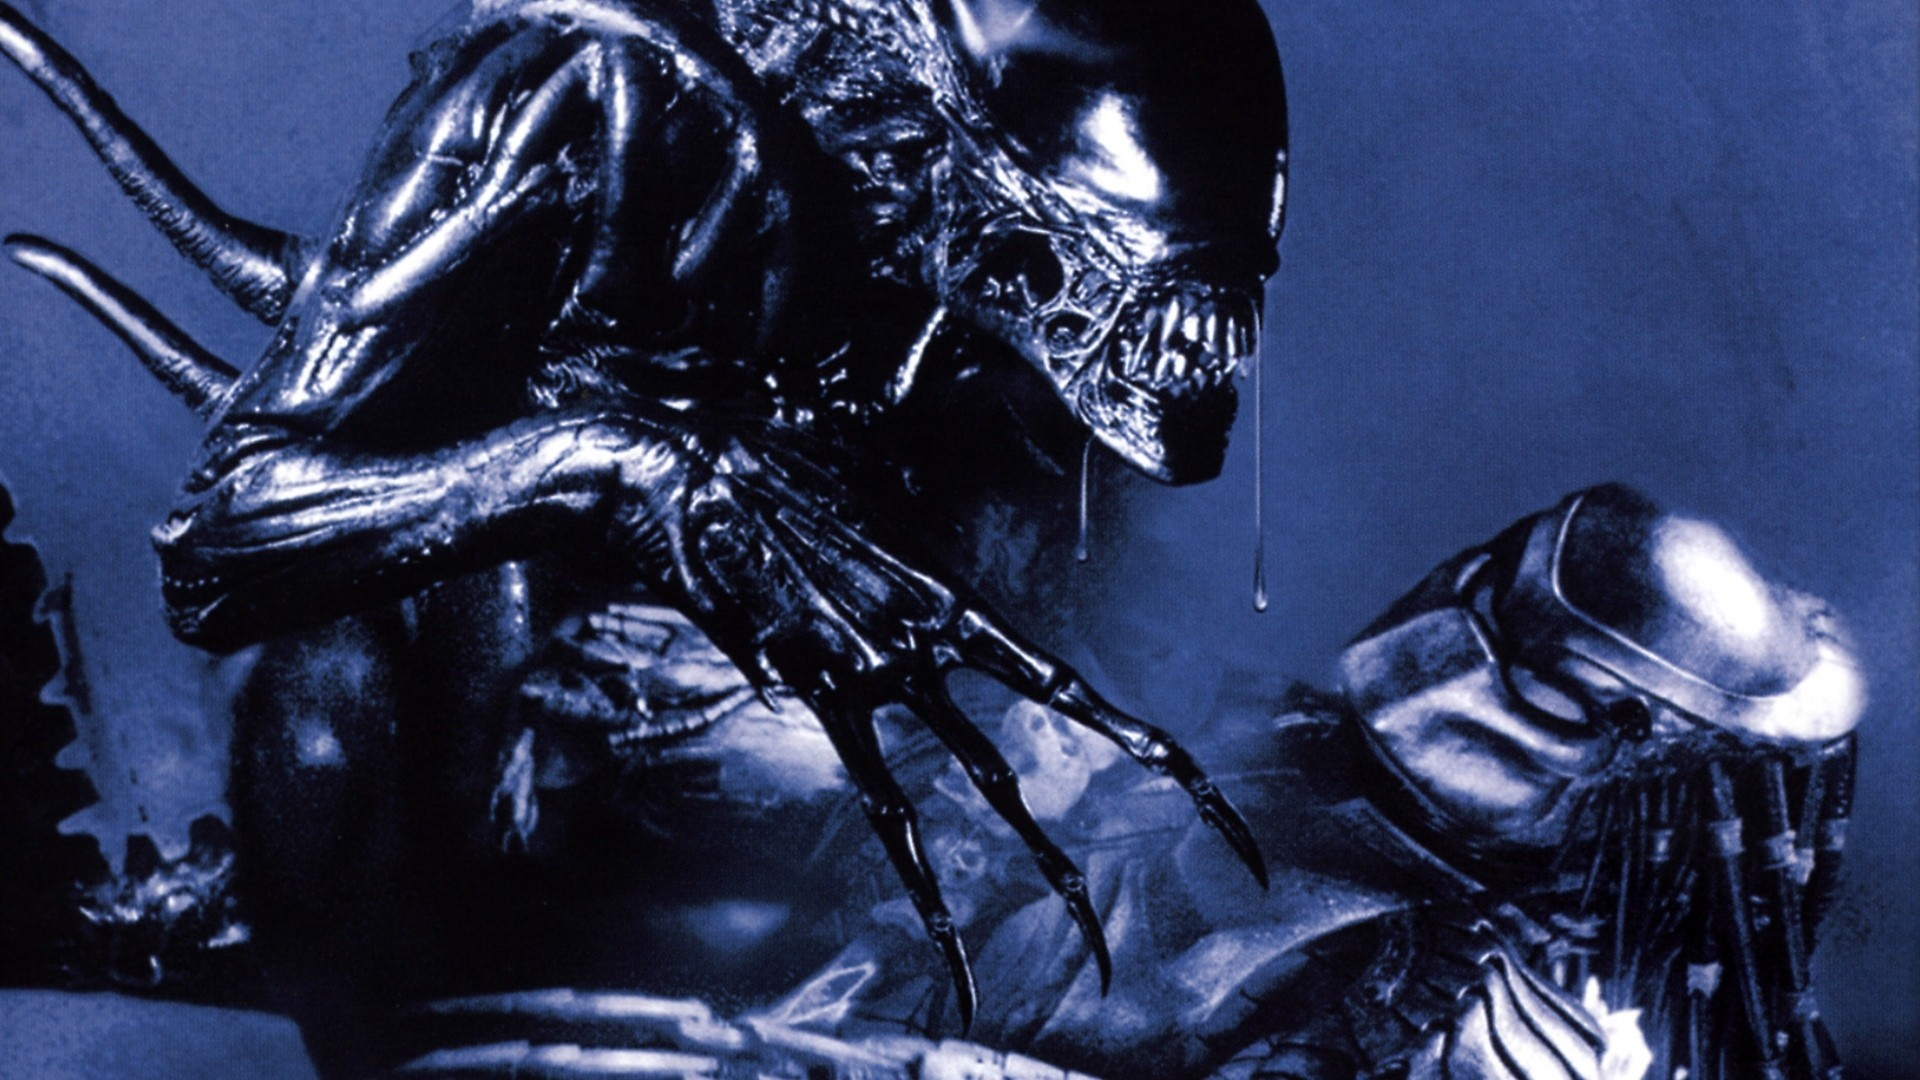 1920x1080px Alien Vs Predator Wallpaper Wallpapersafari